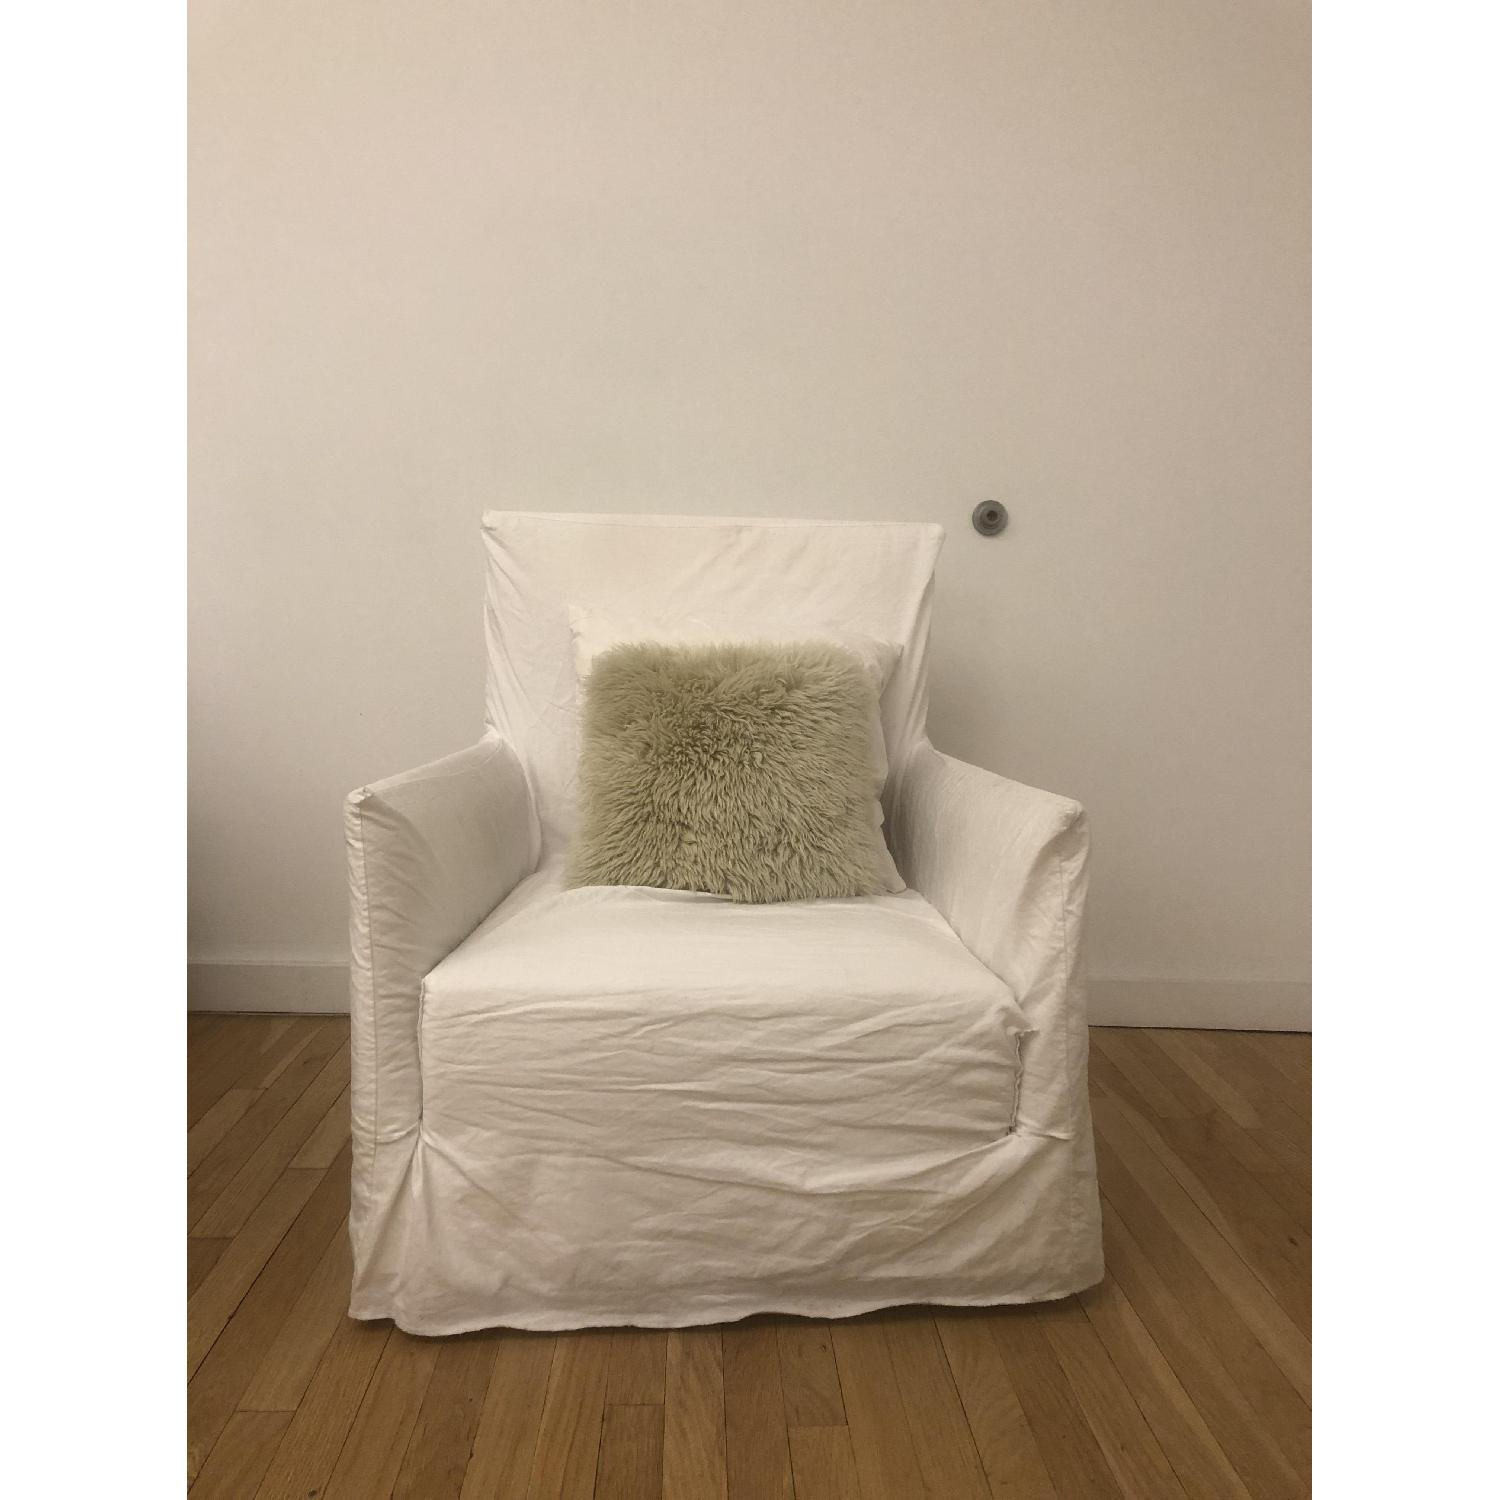 Gervasoni ghost 04 slipcover arm chair 2